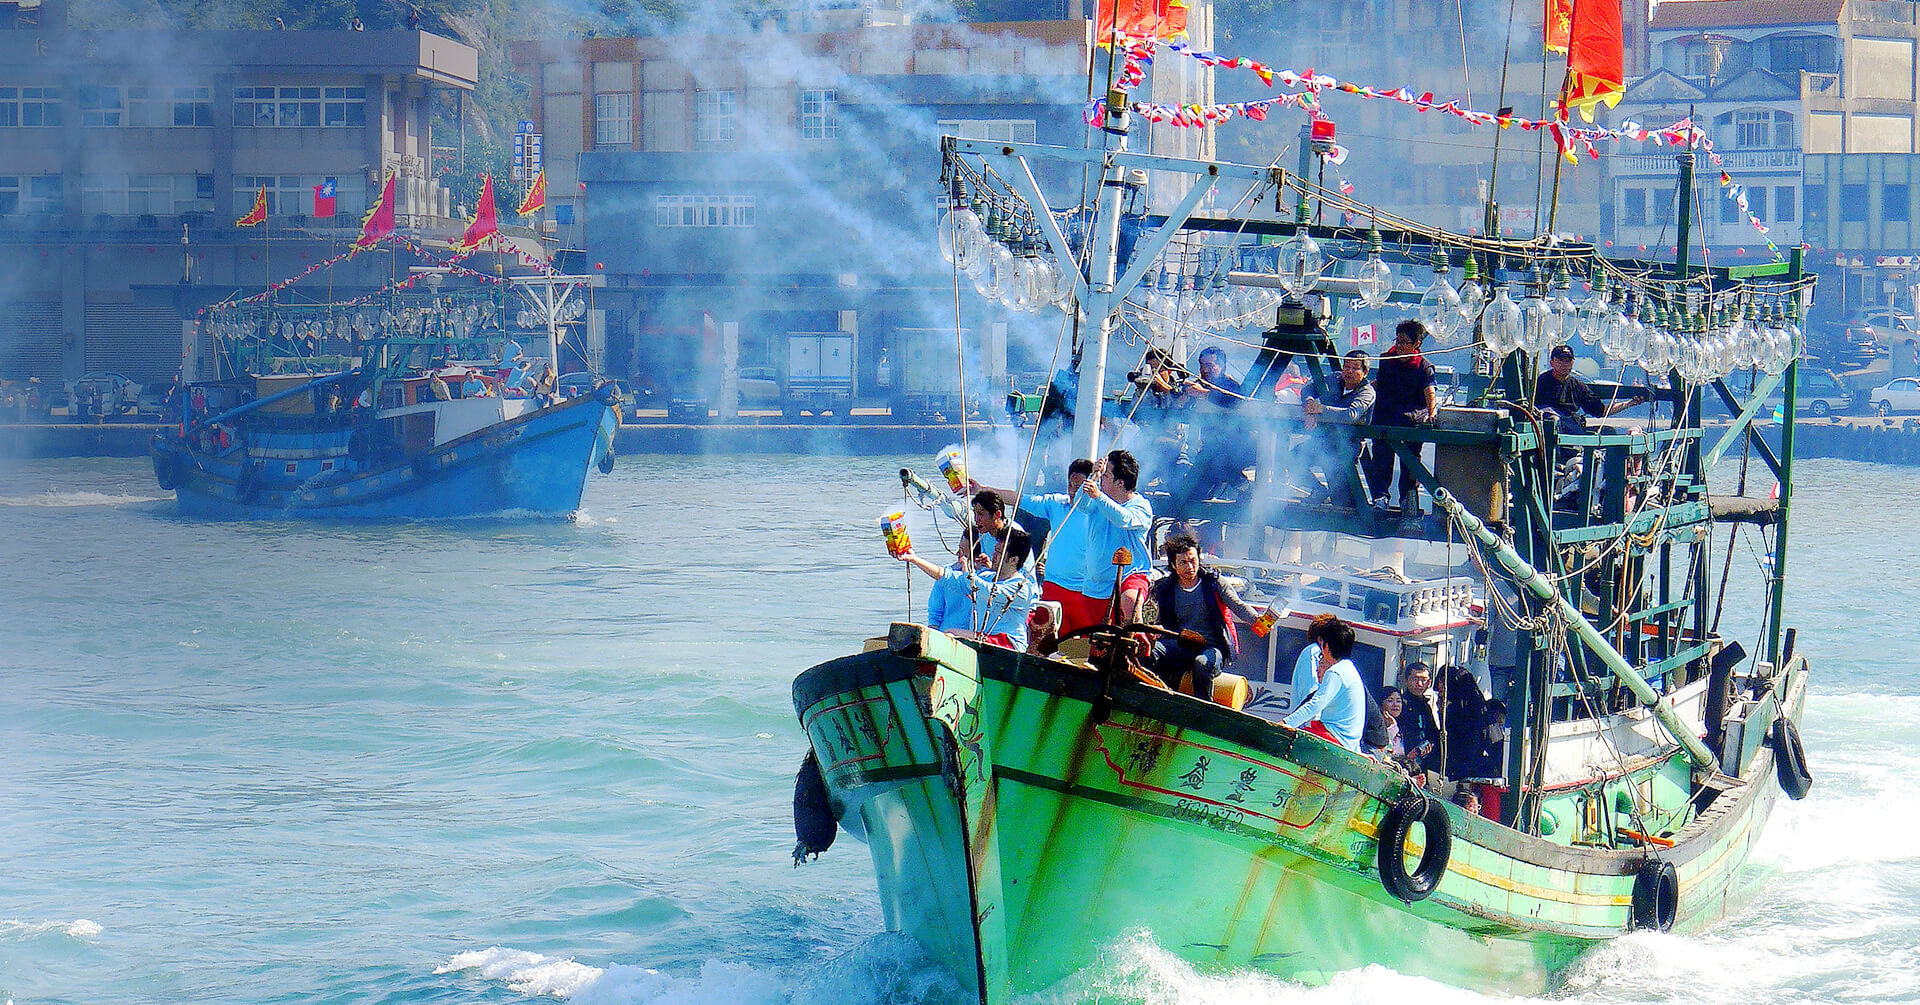 Yehliu Harbor Purification Festival